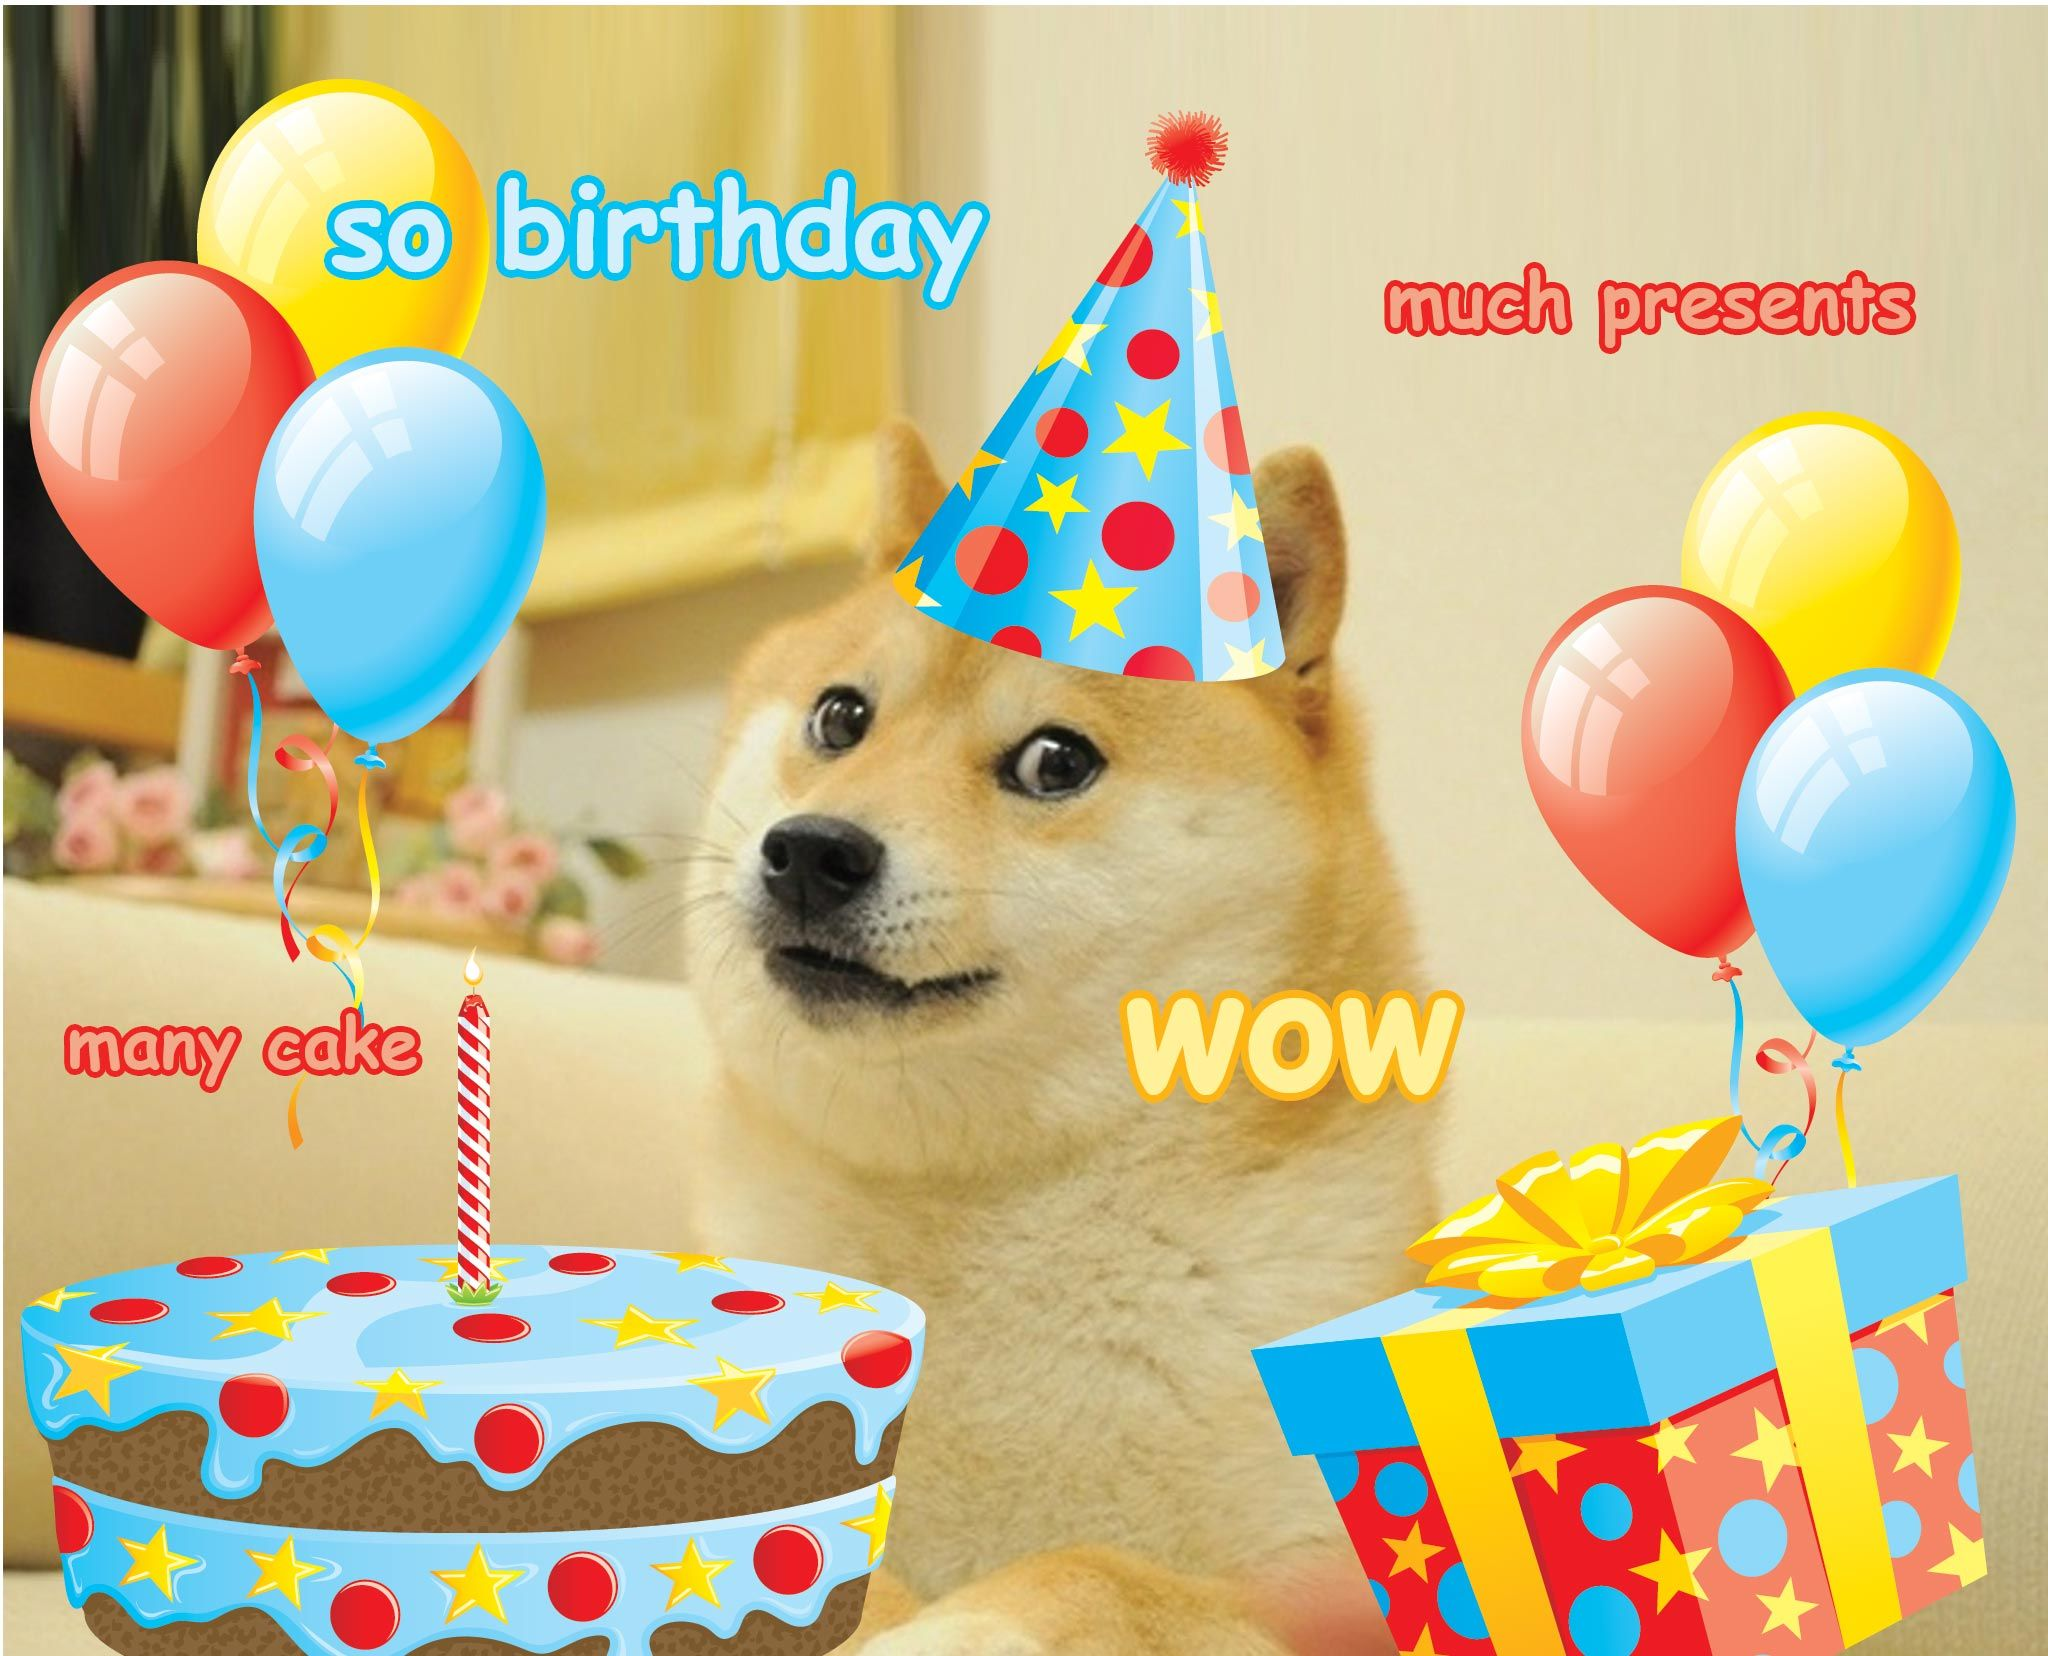 86c4eb718d7d17f3110815dbbe8061ce 24 best much doge so funny wow images on pinterest funny,So Much Wow Meme